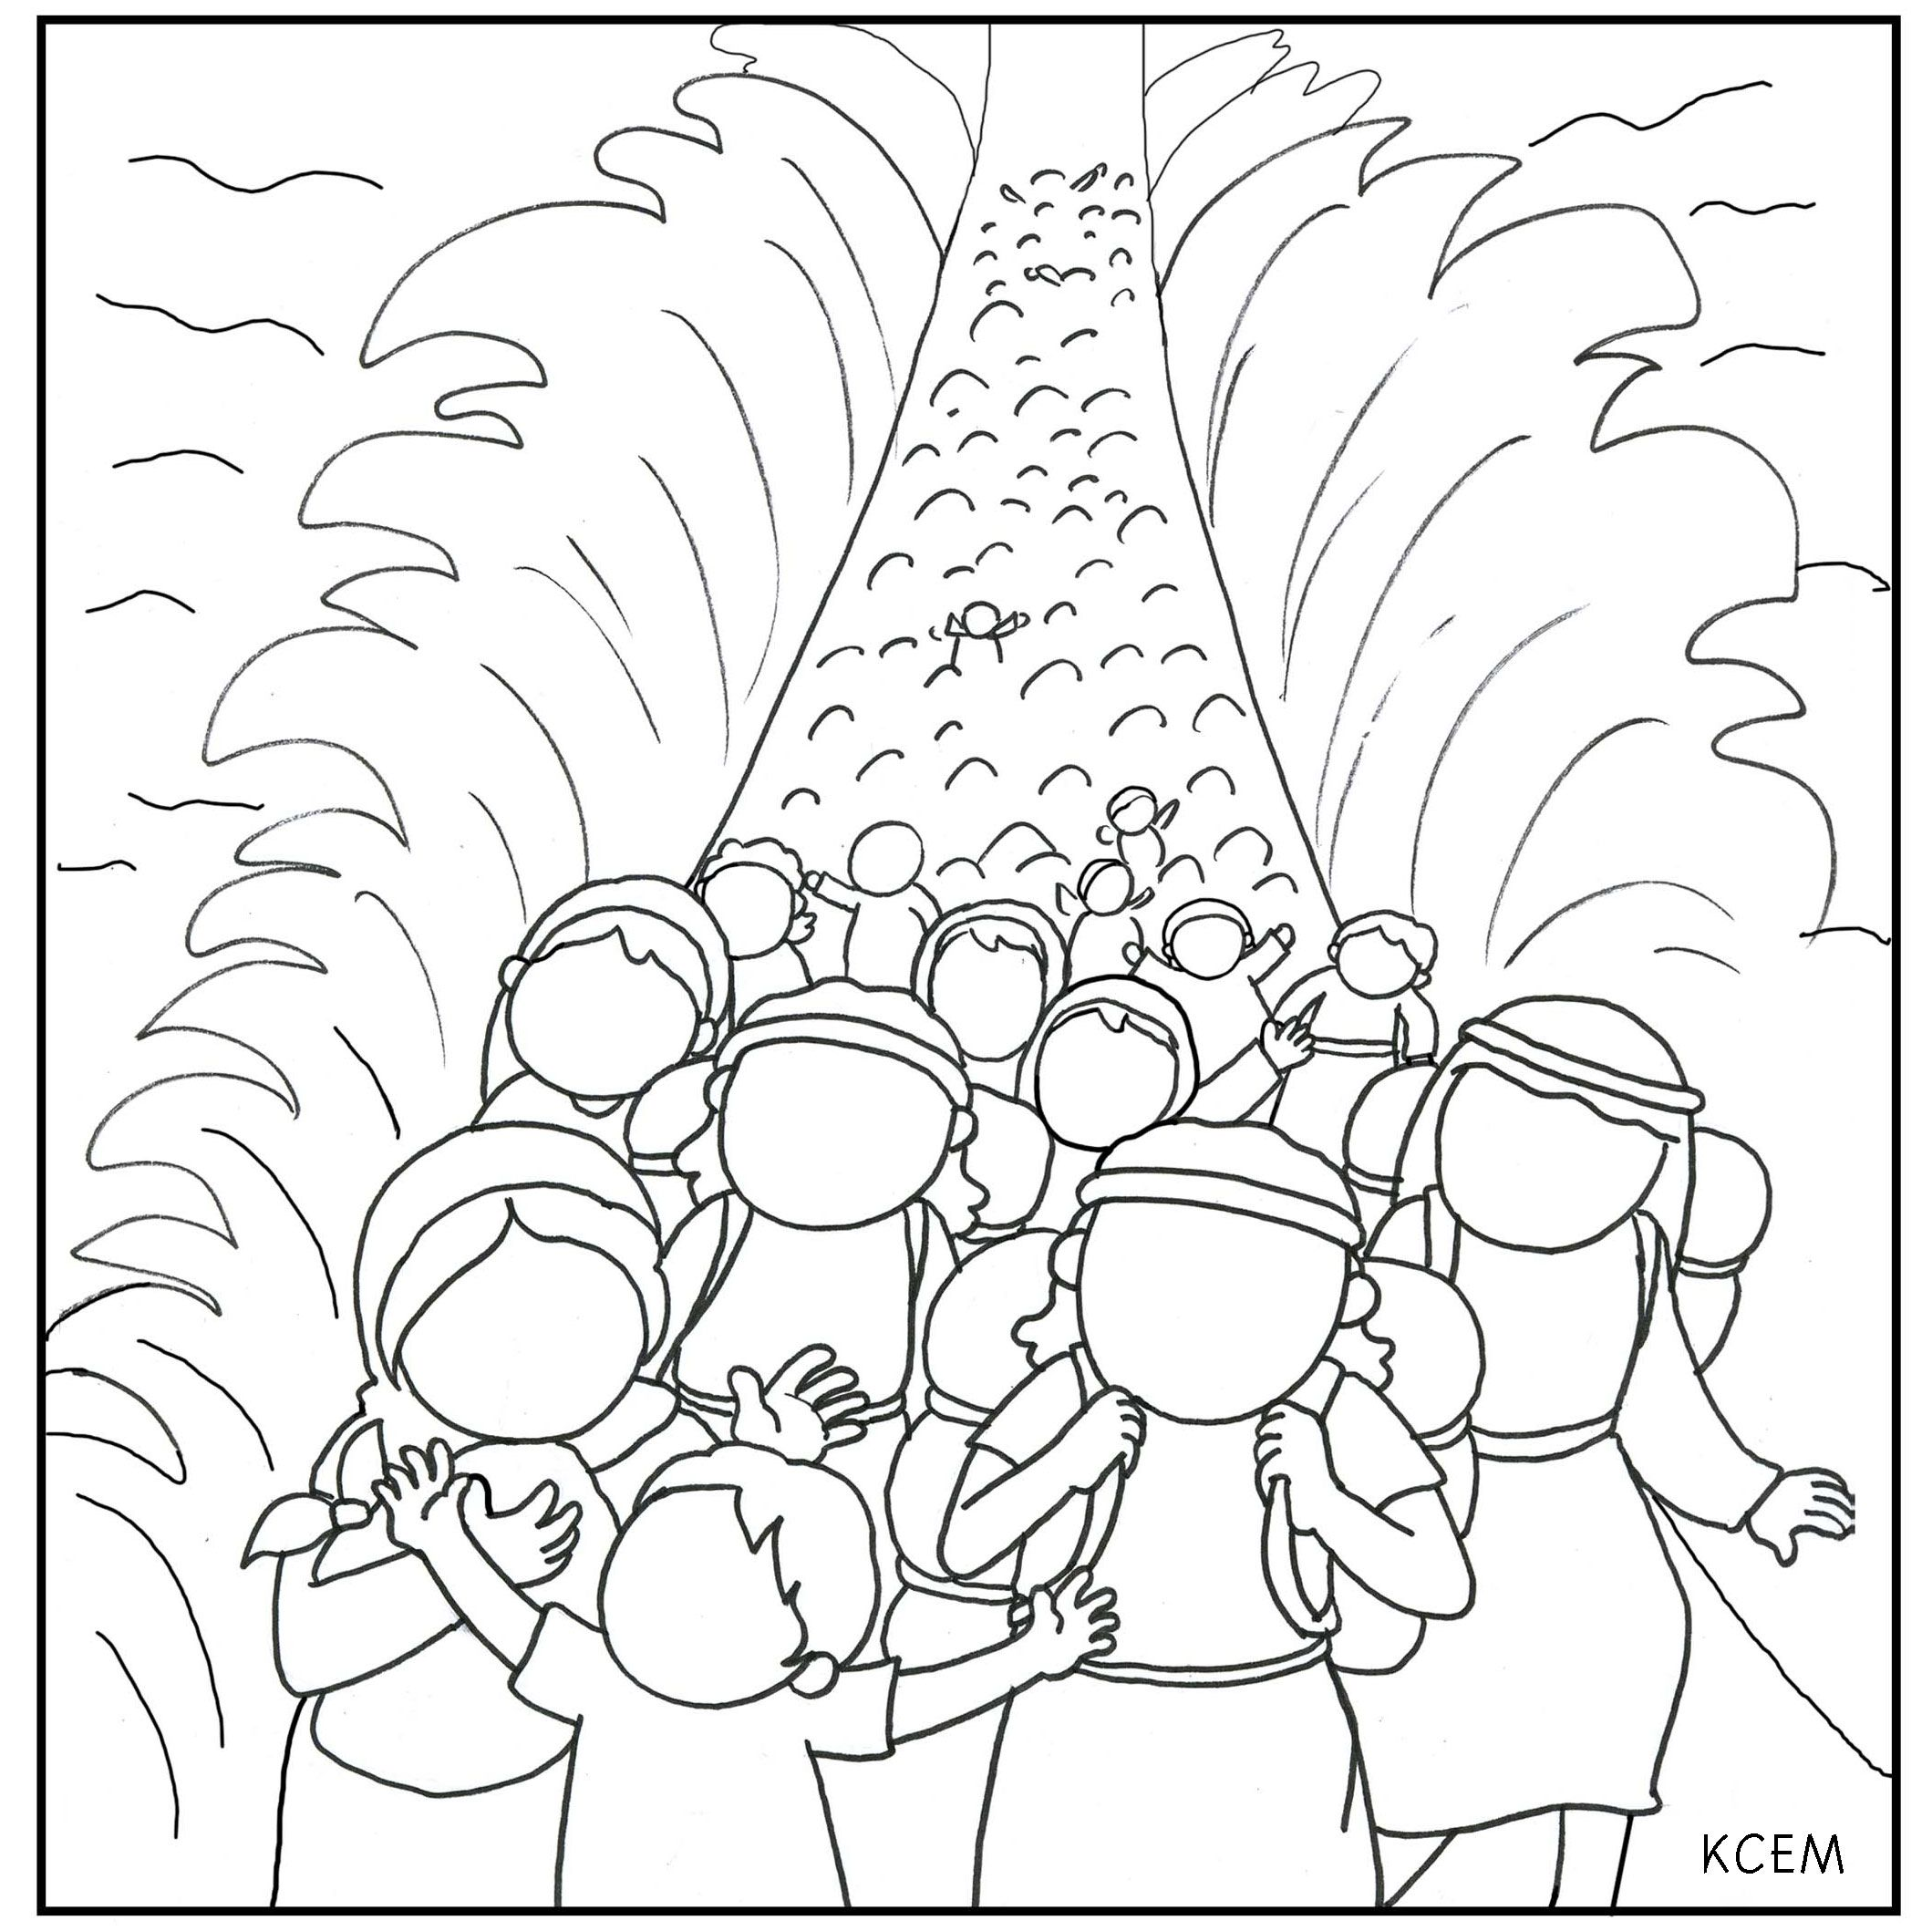 Coloring pages moses parts the red sea - Moses Coloring Pages Forcoloringpages Com